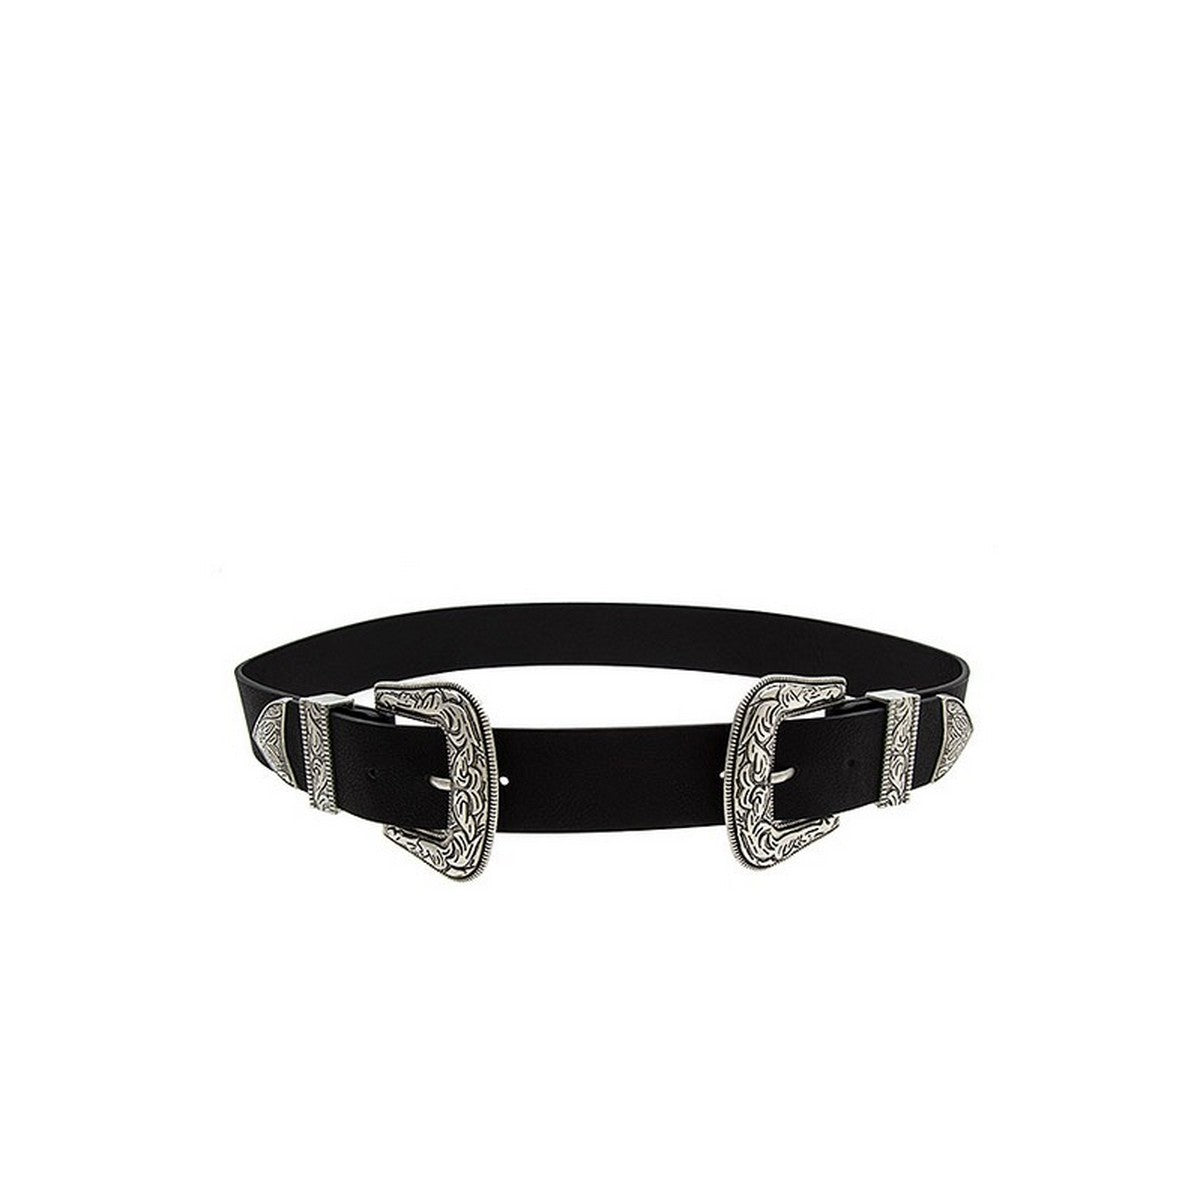 Women's Etched Double Side Buckle Fashion Belt